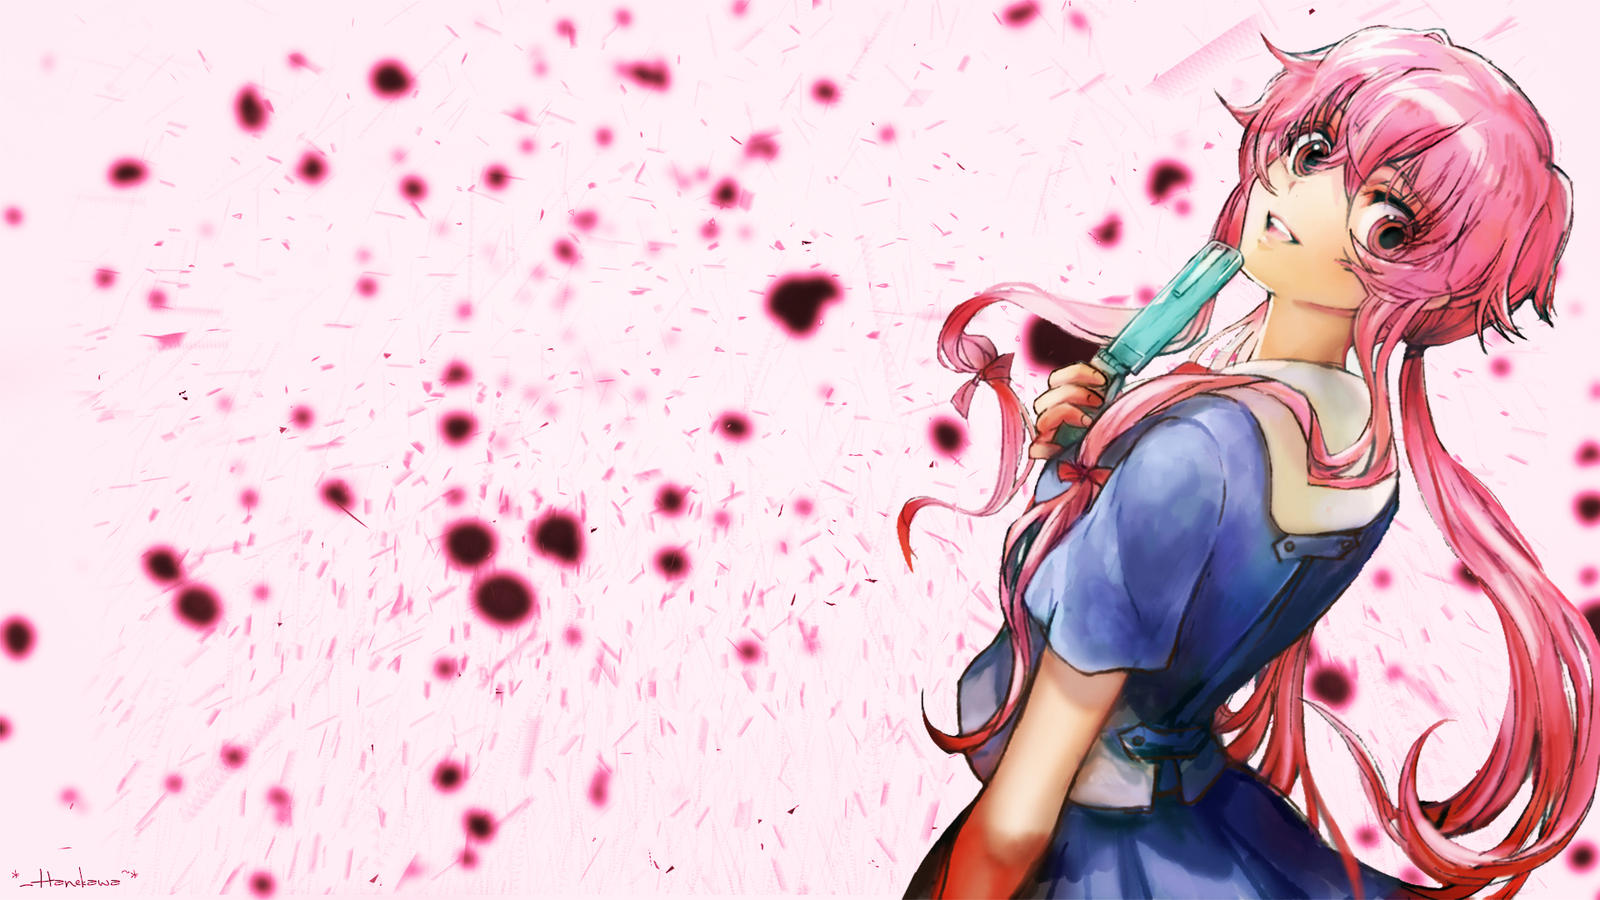 Gasai Yuno Wallpaper: Yuno Gasai Wallpaper[1920x1080] By Han3kawa On DeviantArt